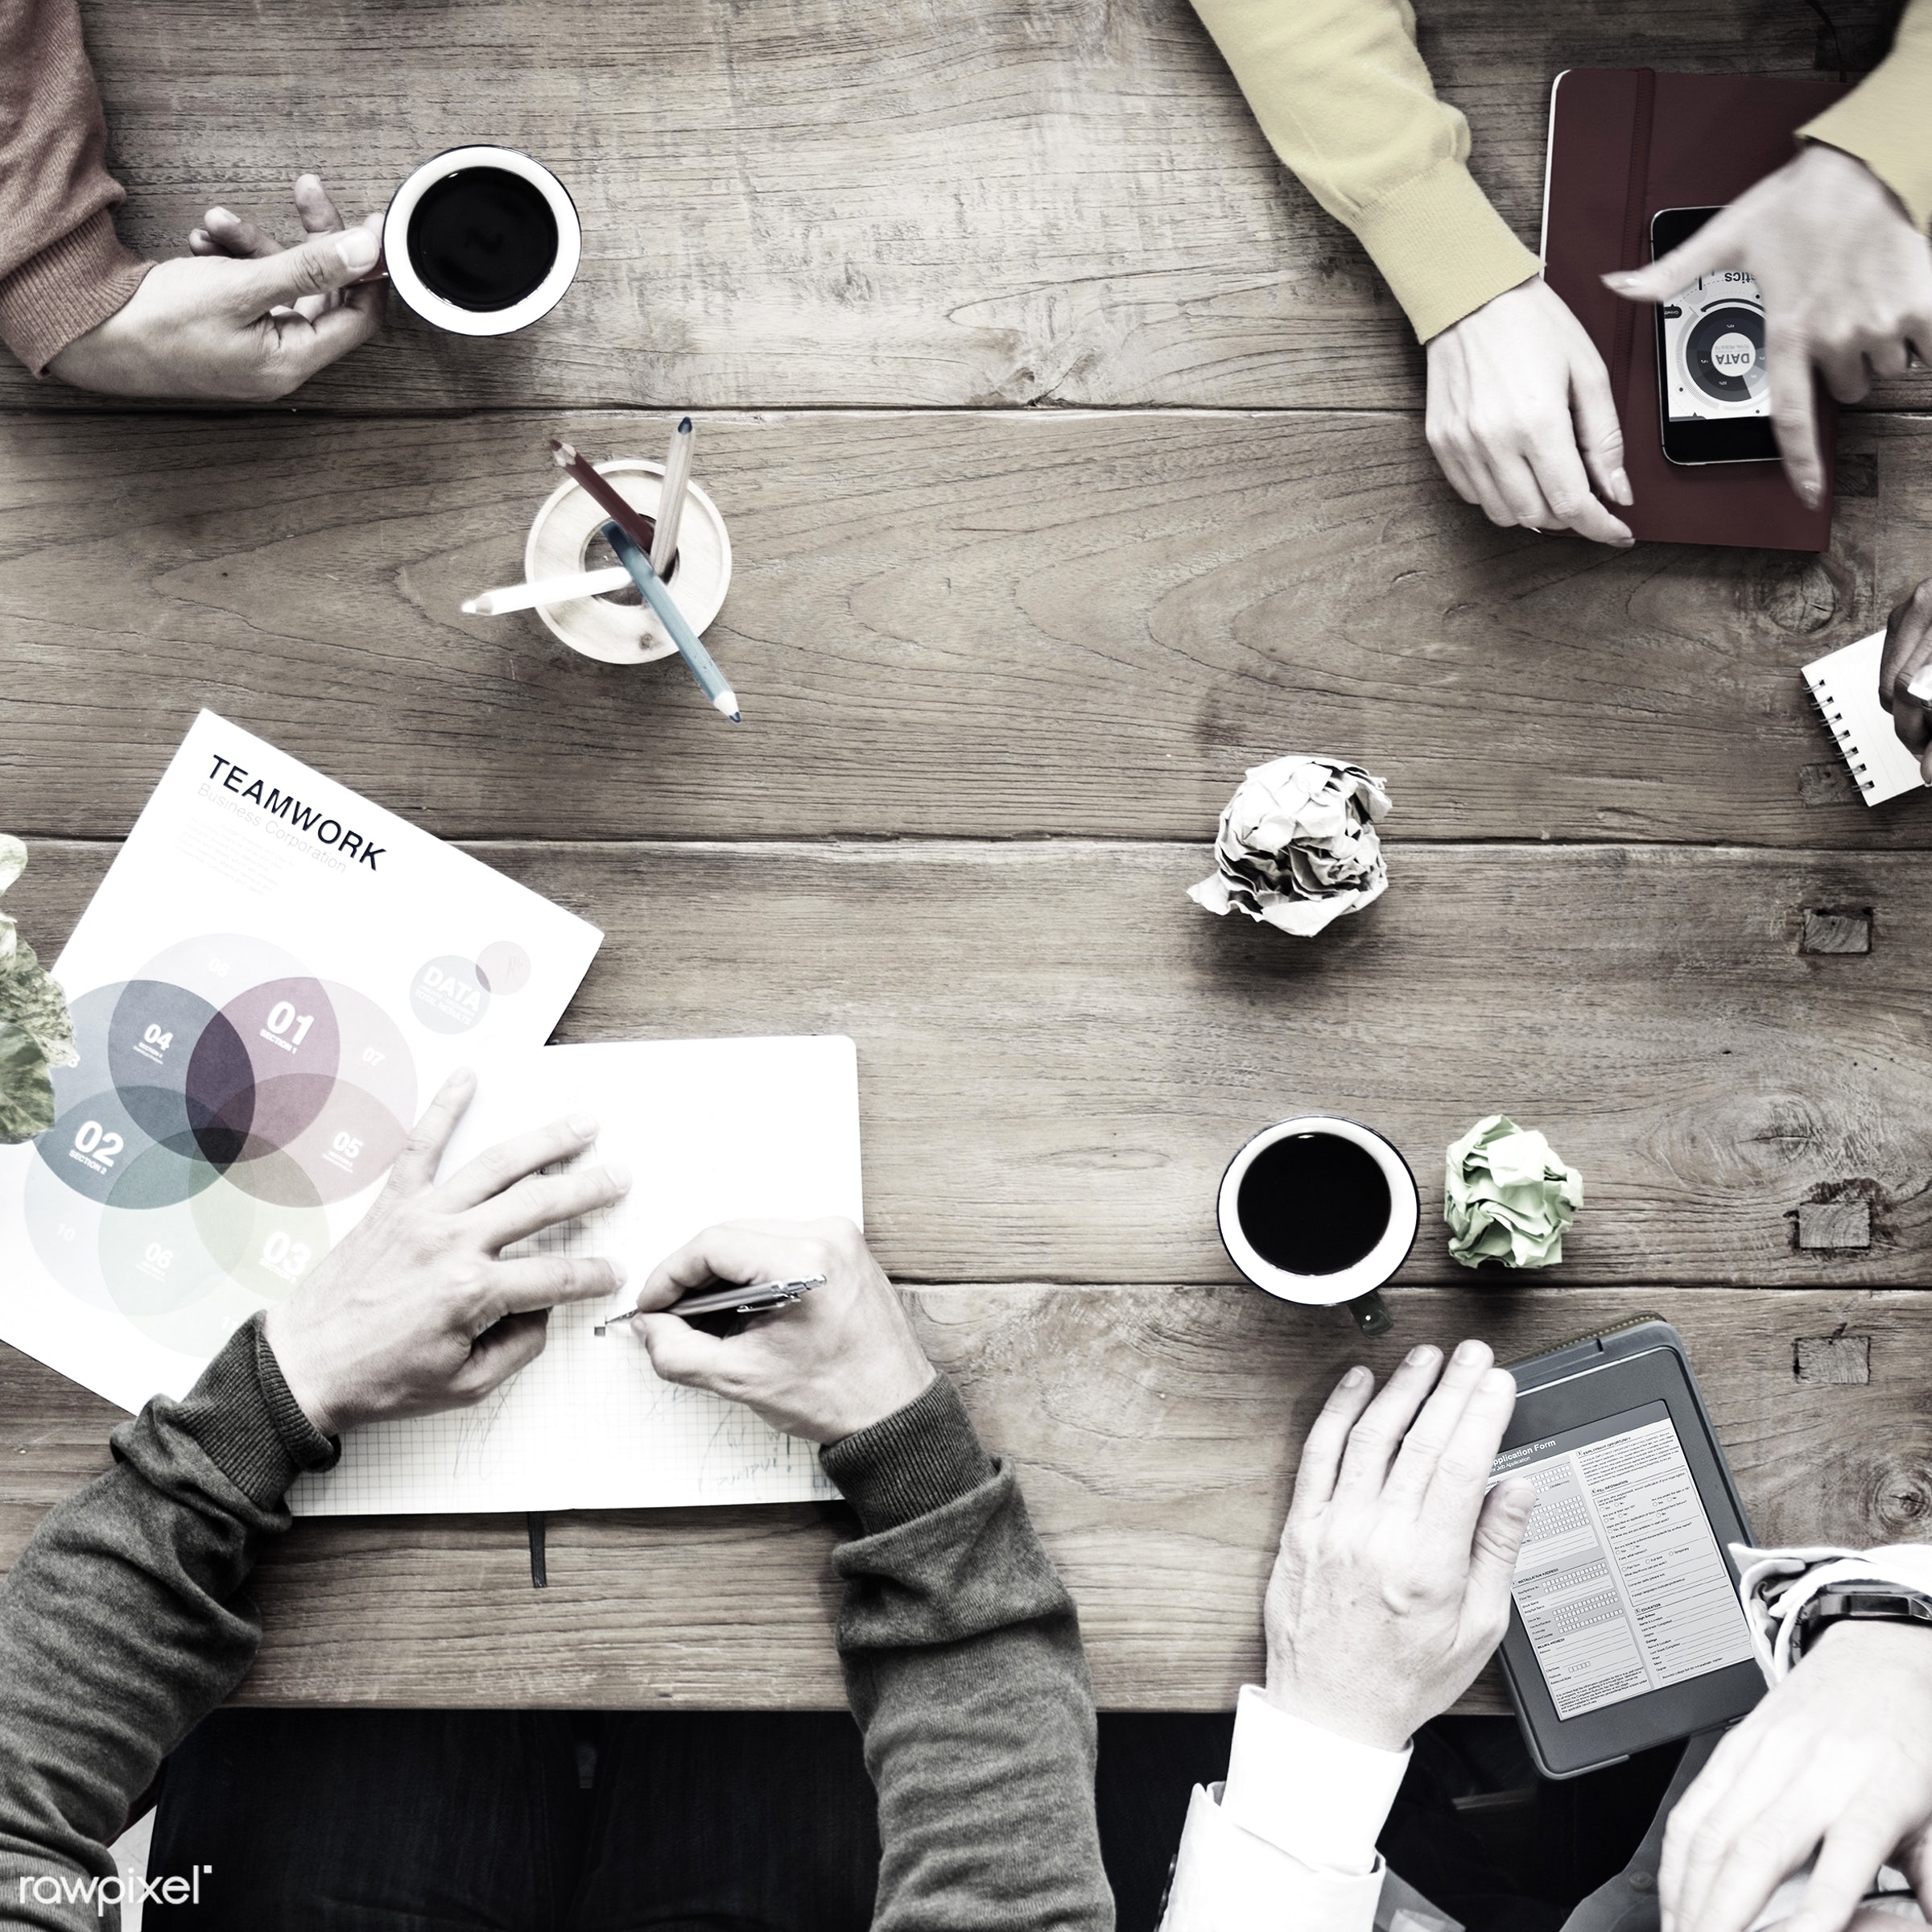 aerial view, african descent, asian ethnicity, brainstorming, business, business people, cafe, coffee, colorful,...